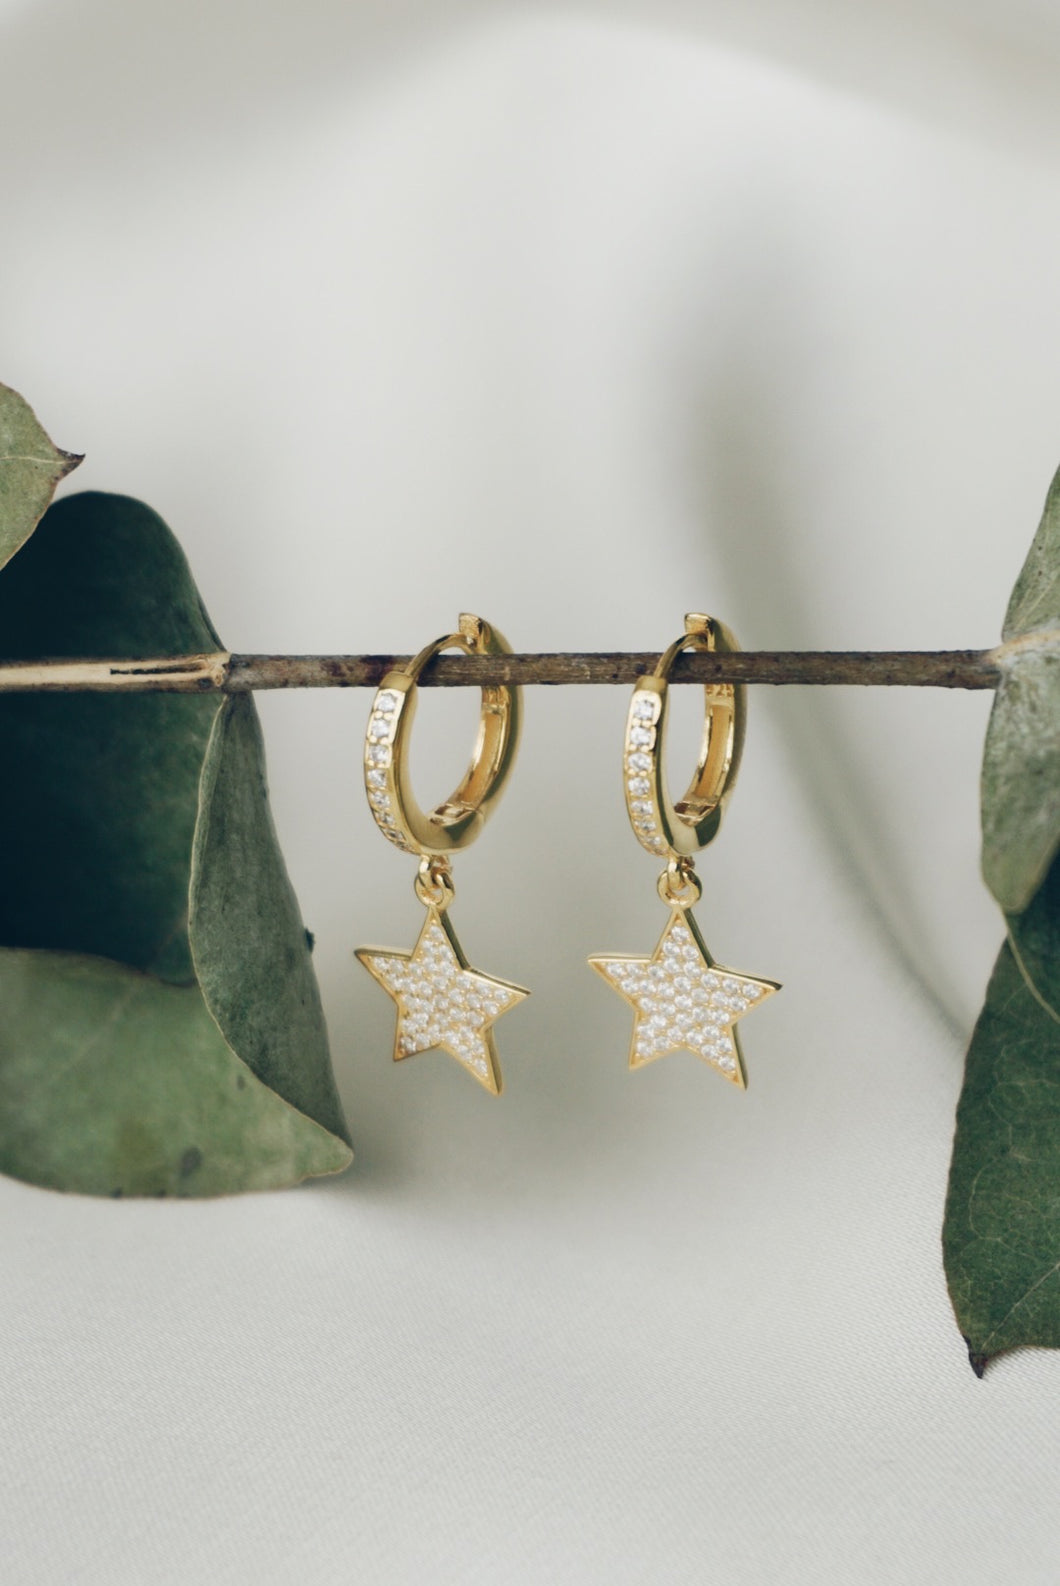 Double star hoop earrings